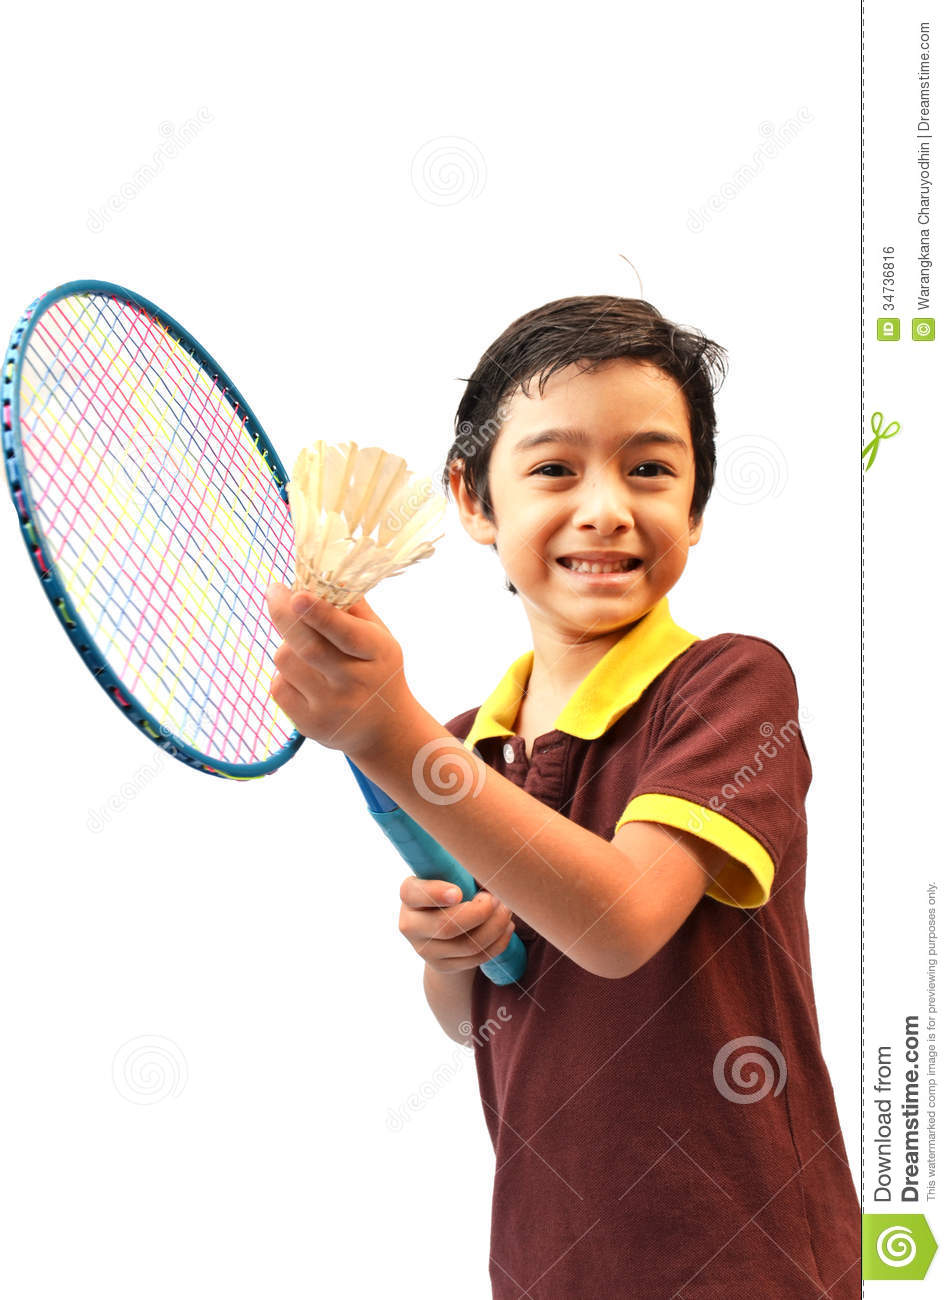 essay playing badminton Playing badminton is one of my favourite hobbies, which makes me feel excited and turns my passion on i started playing badminton since i was 9 years old.